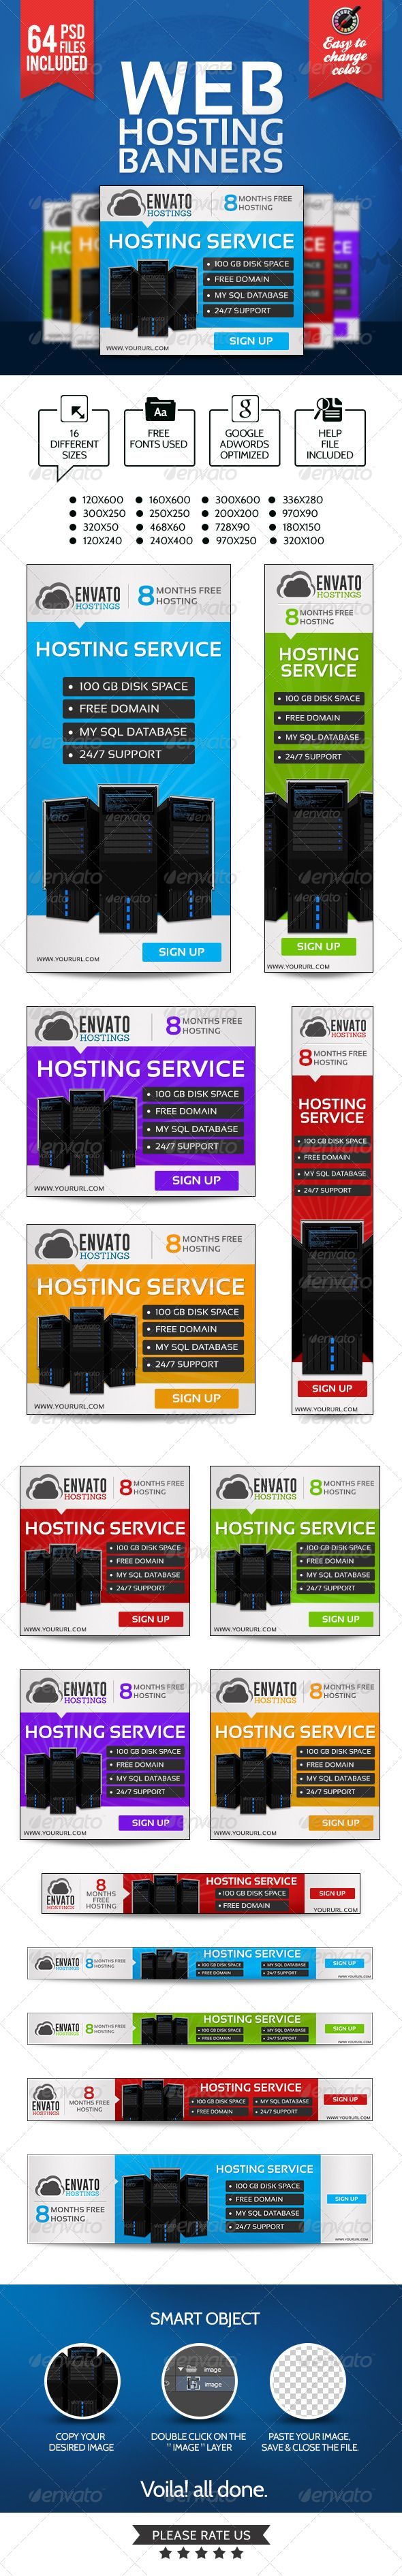 Web Hosting Banners Template PSD | Buy and Download: http://graphicriver.net/item/web-hosting-banners-64-psds/7354427?WT.ac=category_thumb&WT.z_author=BannerDesignCo&ref=ksioks